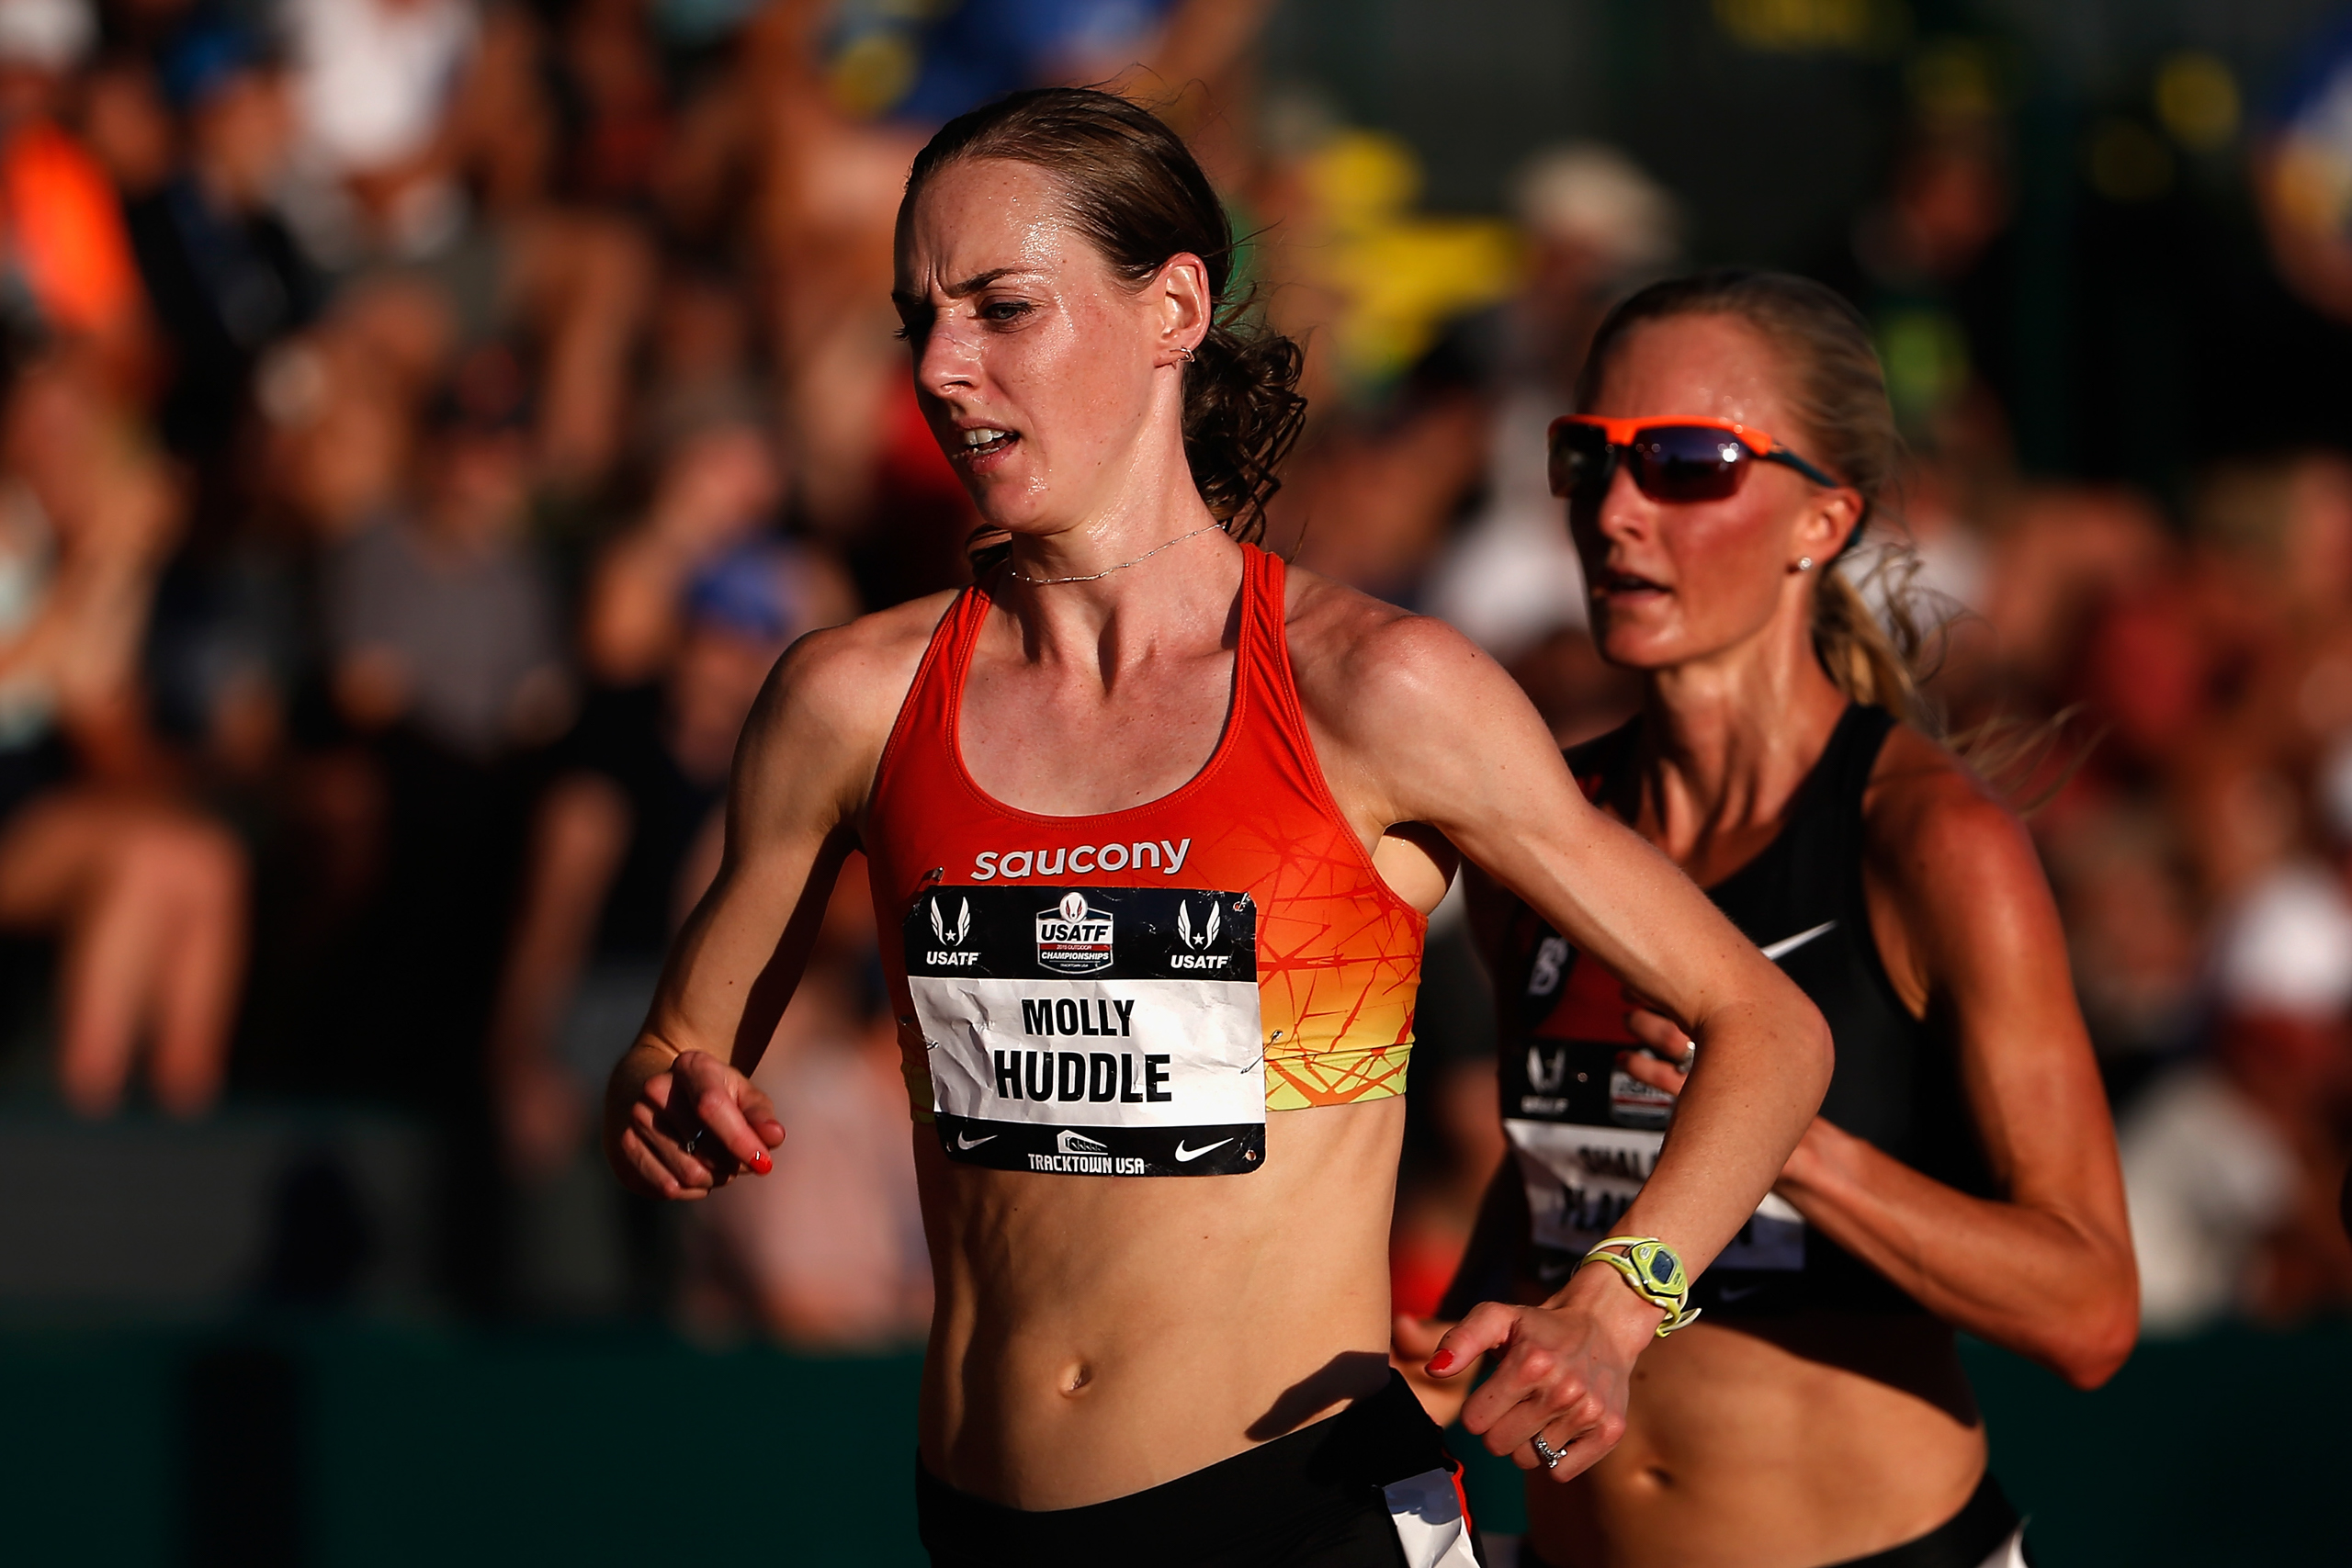 <strong>Molly Huddle, Track and Field, USA</strong>Huddle won both the 5,000 m and 10,000 m at U.S. trials, but will only run the 10,000 in Rio, where she could be just the third American woman to medal in that event.